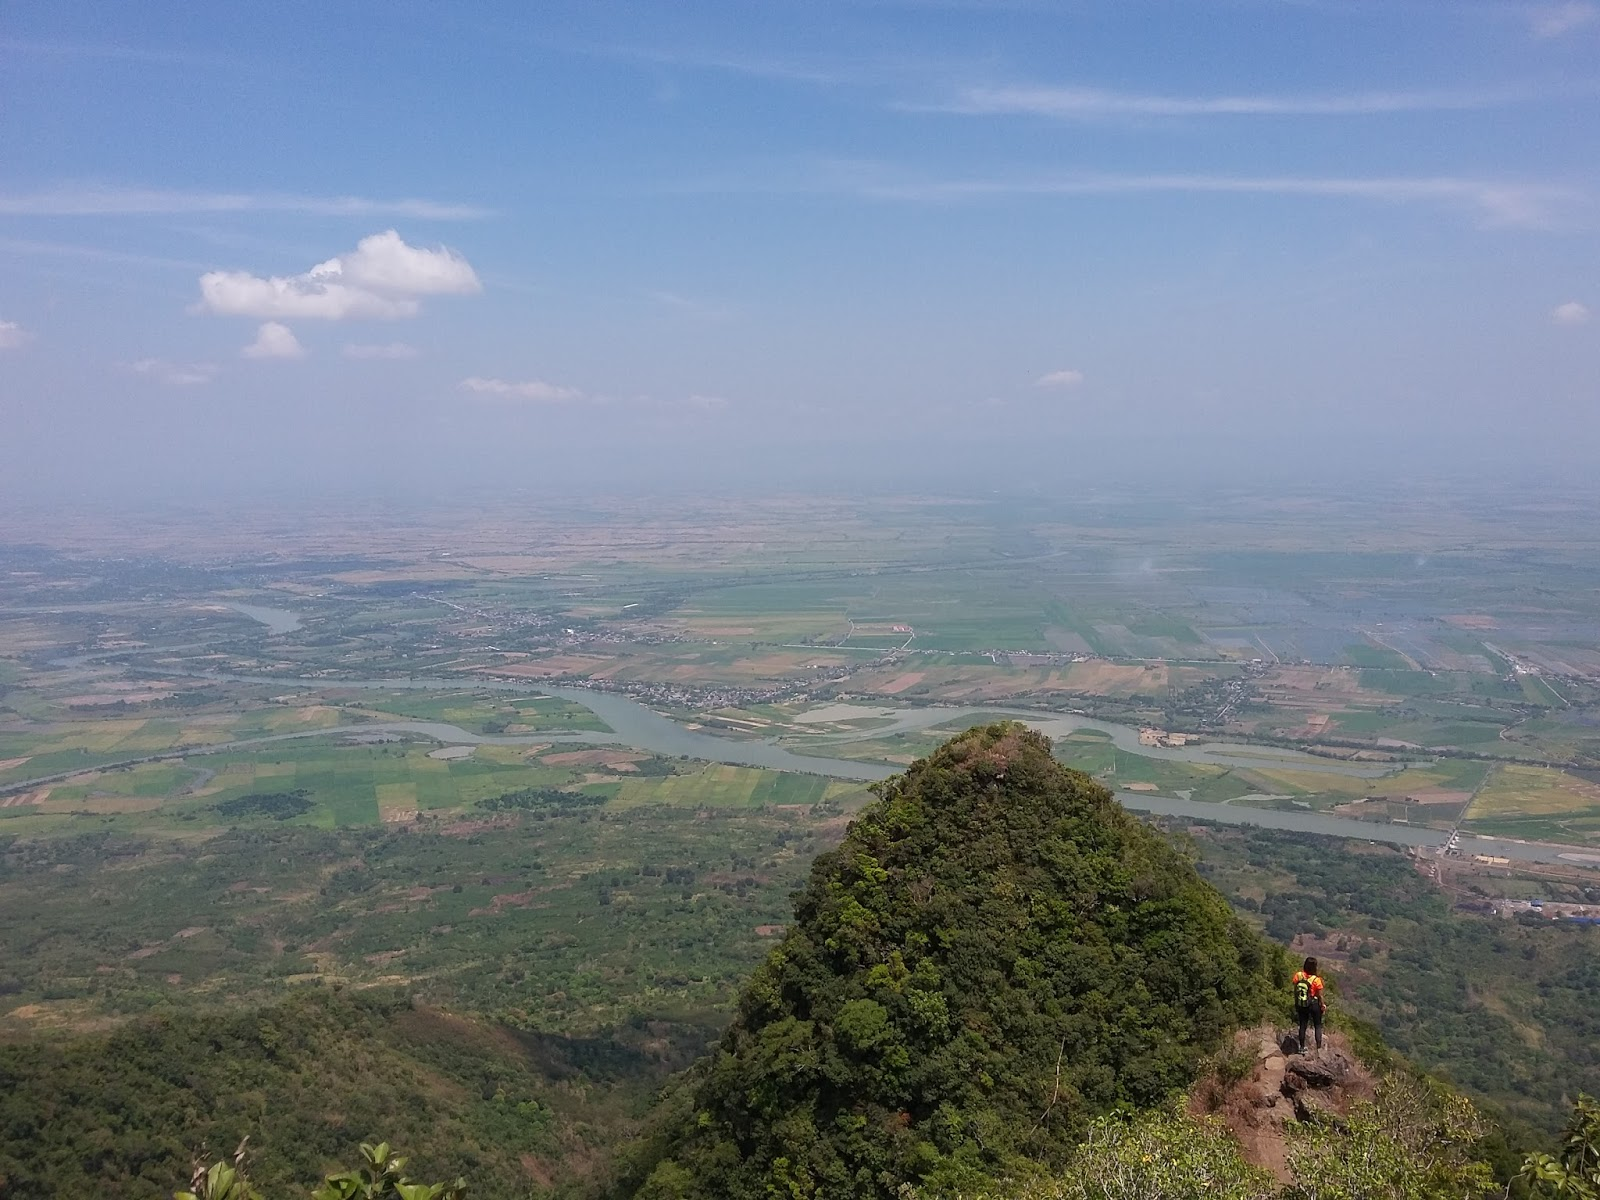 conquering arayat Jose tarlac as the san jose circuit of mt a view of the great mt arayat on its front and the bushes due to few climbers are conquering.